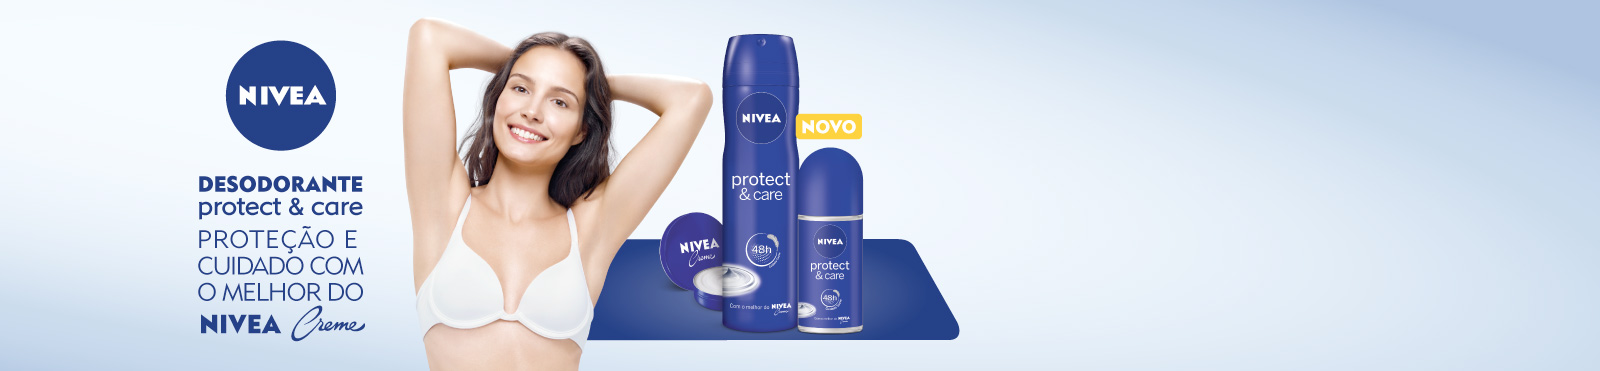 nivea protect & care